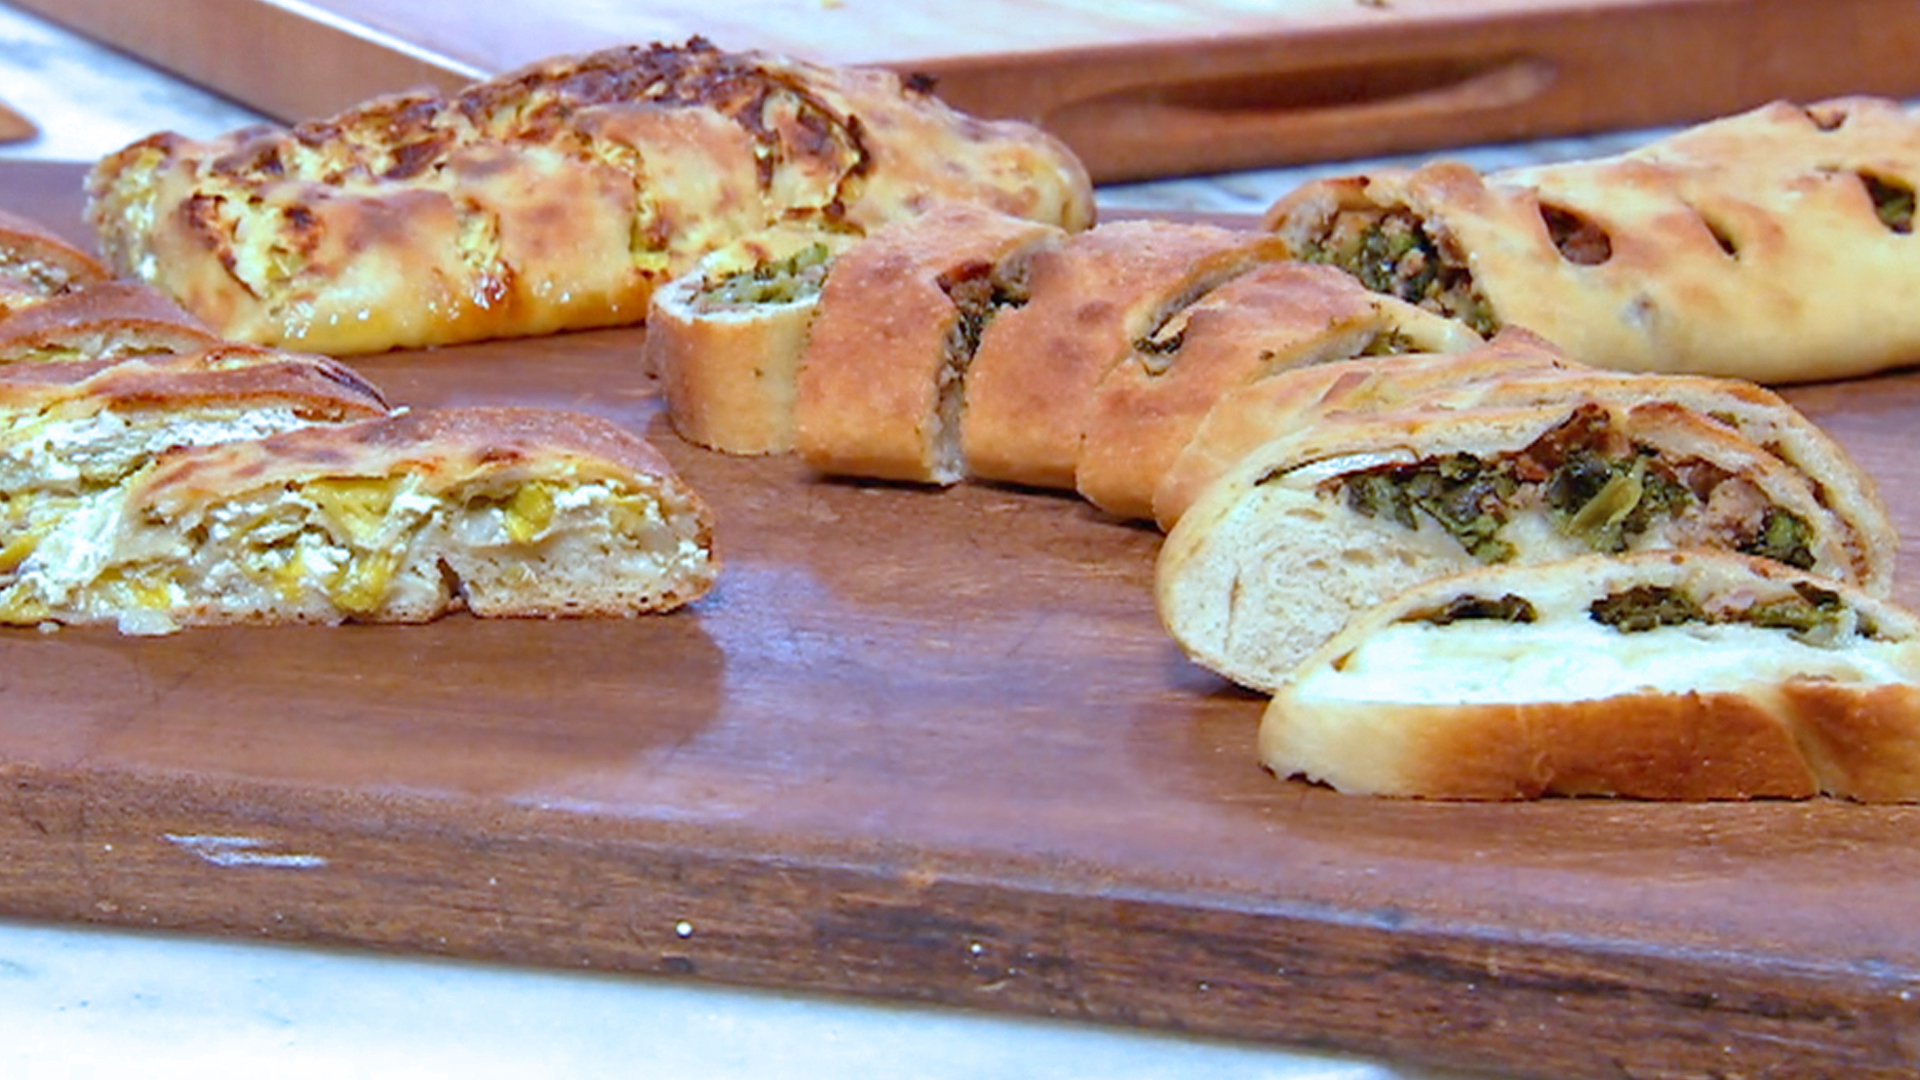 Pizza Rolls with Broccoli Rabe and Sausage or Ricotta and Leeks